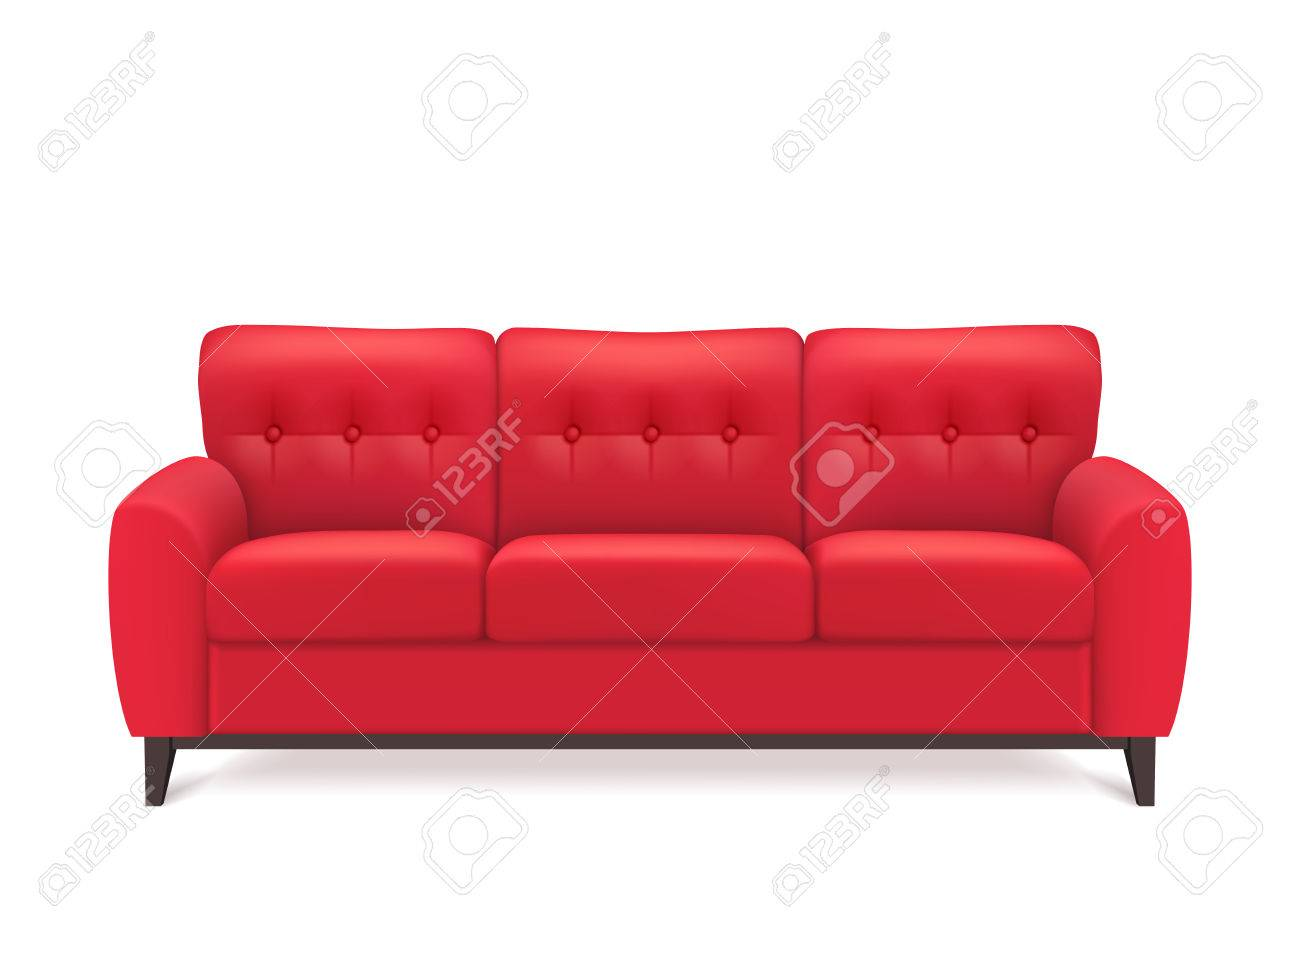 Red leather luxury sofa for modern living room reception or lounge single object realistic design vector illustration - 52695504